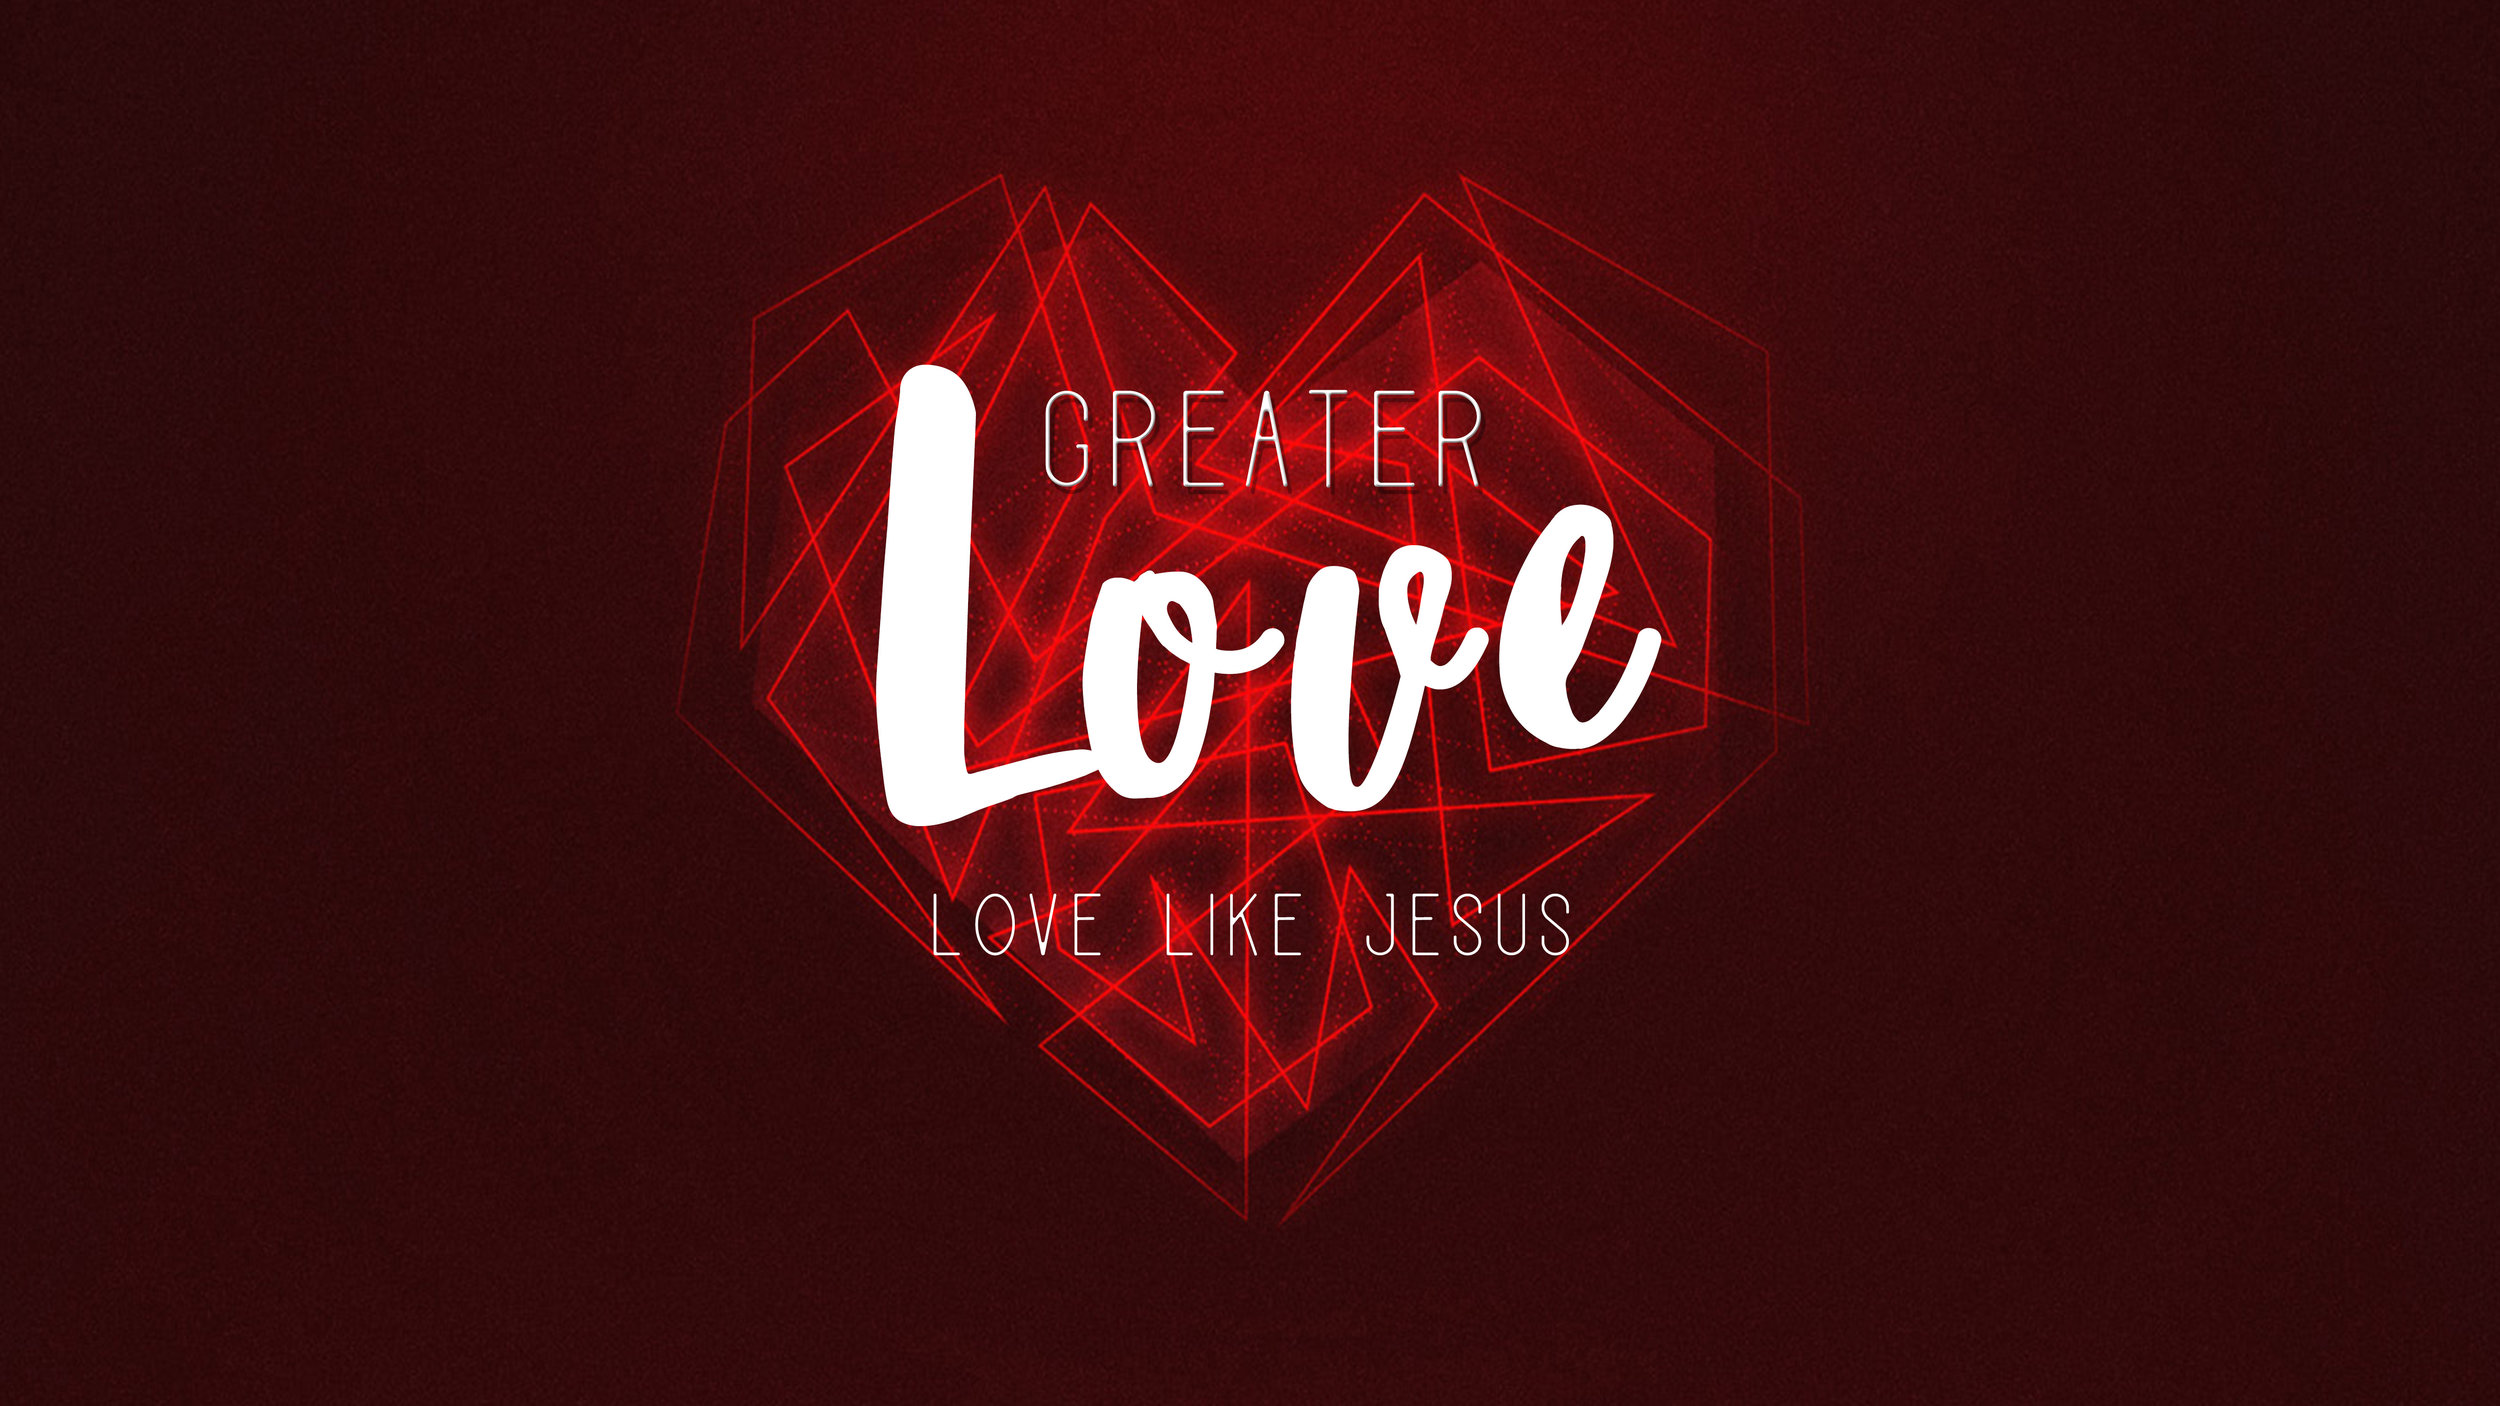 Greater Love: Love Like Jesus